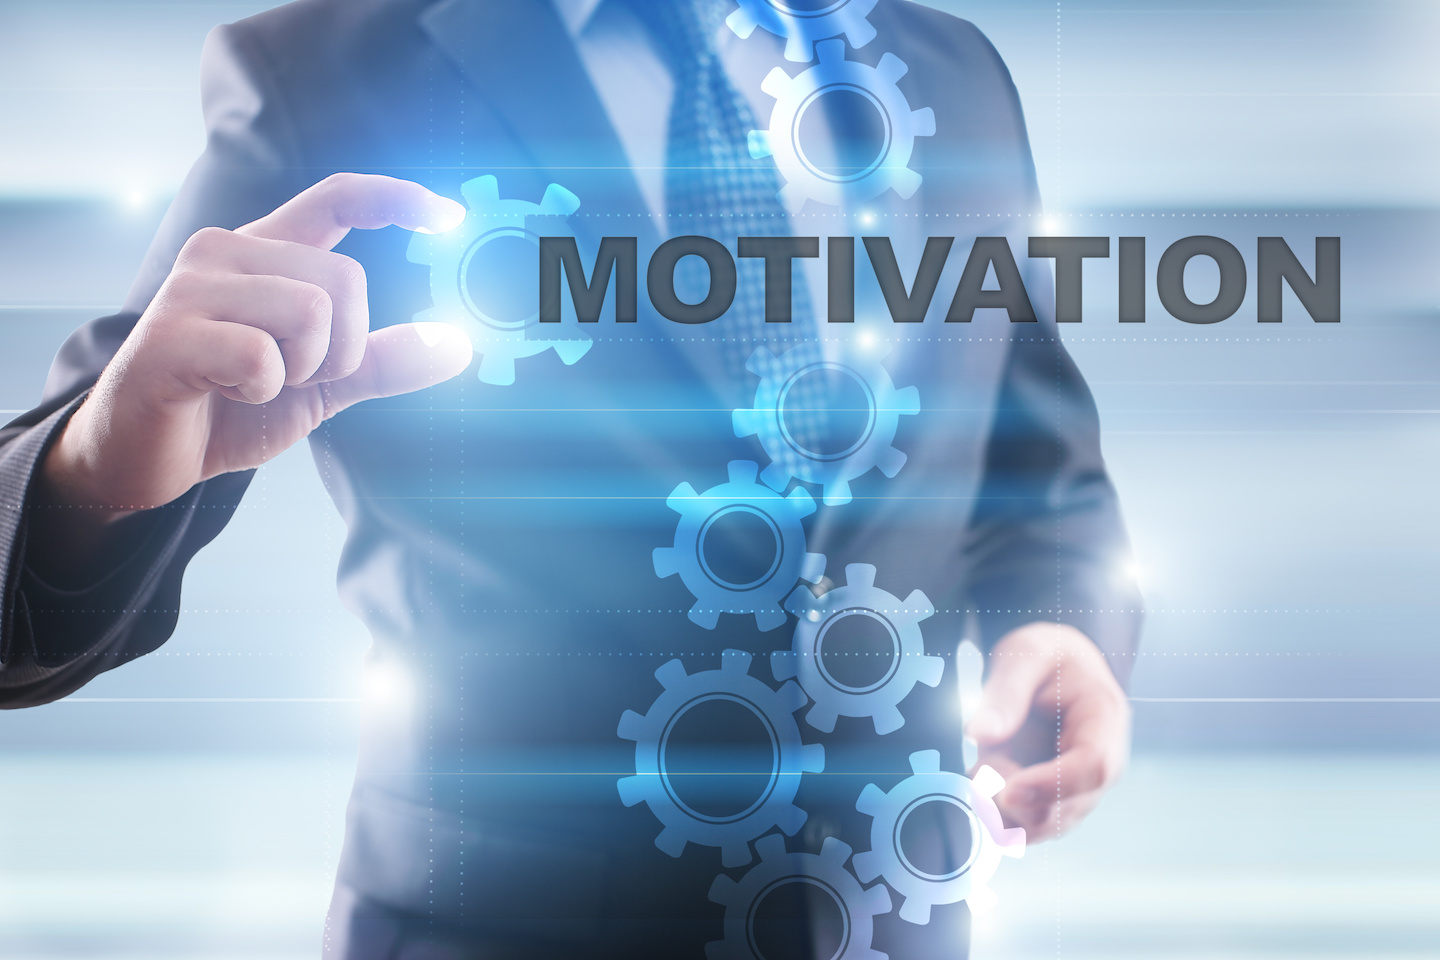 training blog - how do you self-motivate for better performance?